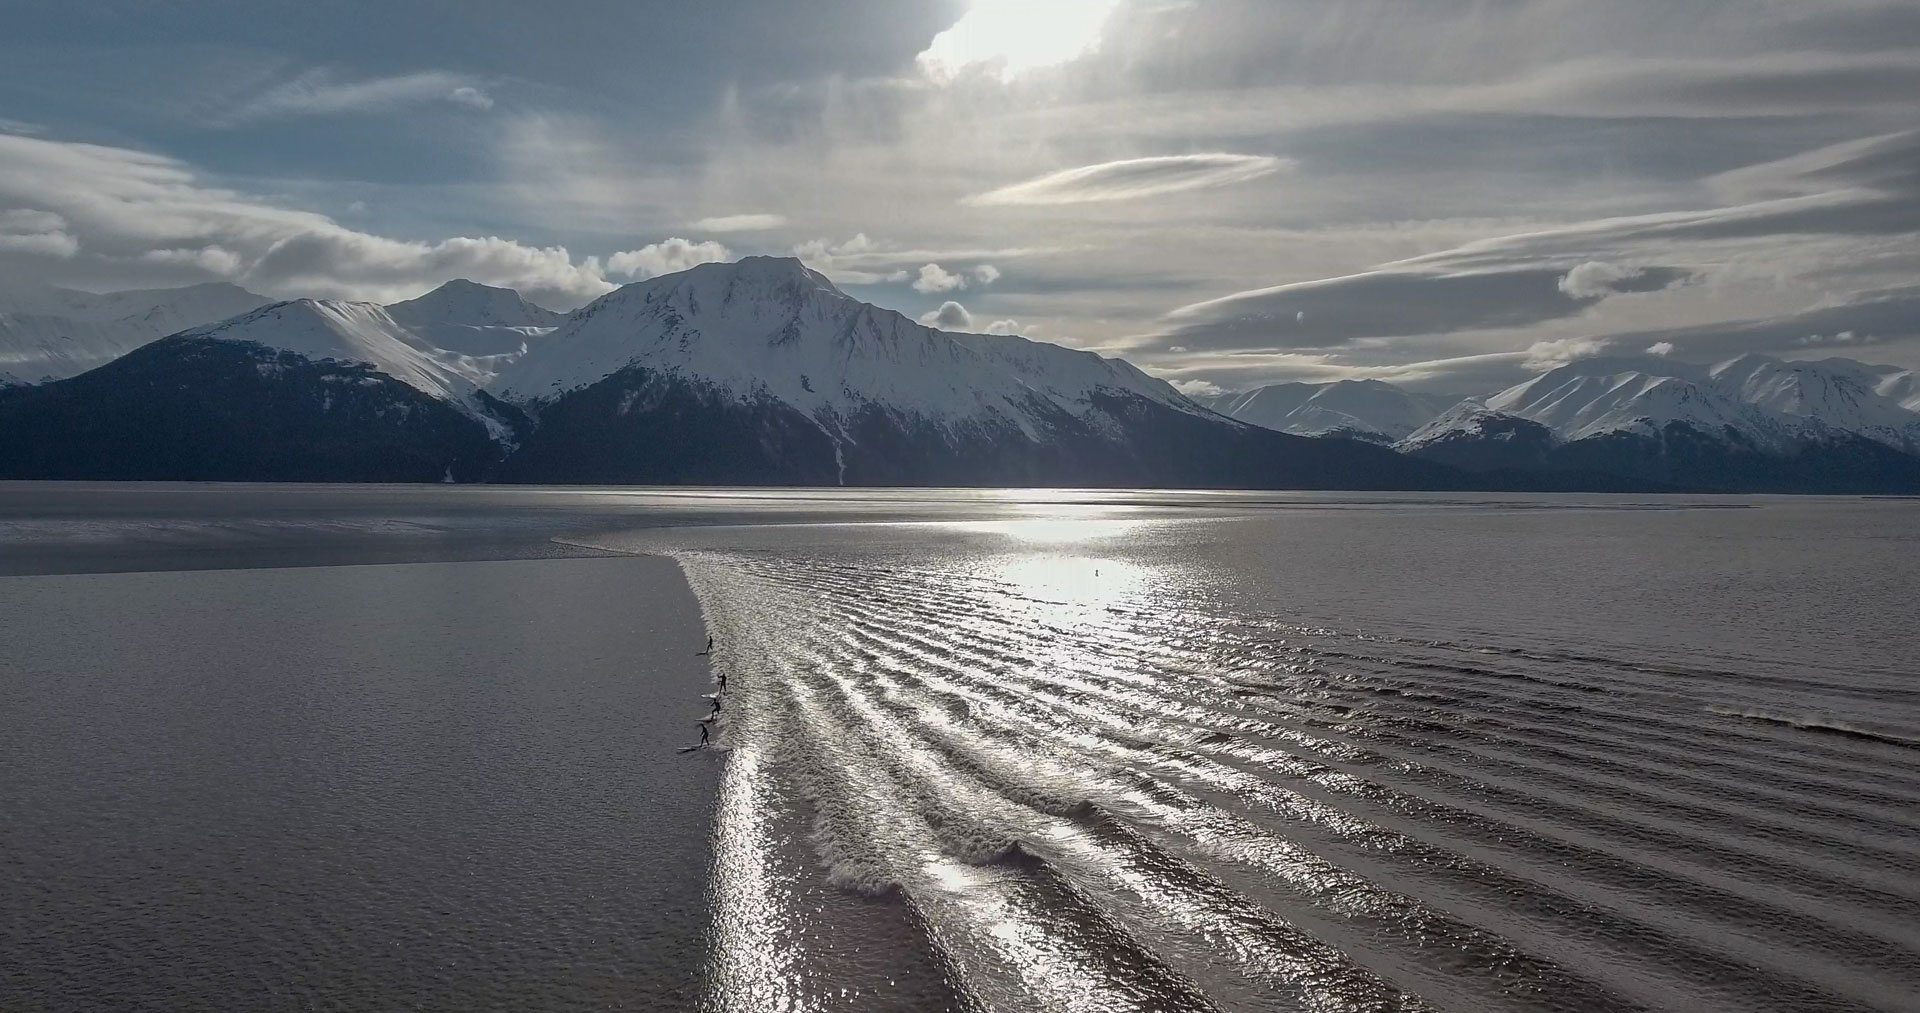 girdwood-alaska-bore-tide-wave-surfing